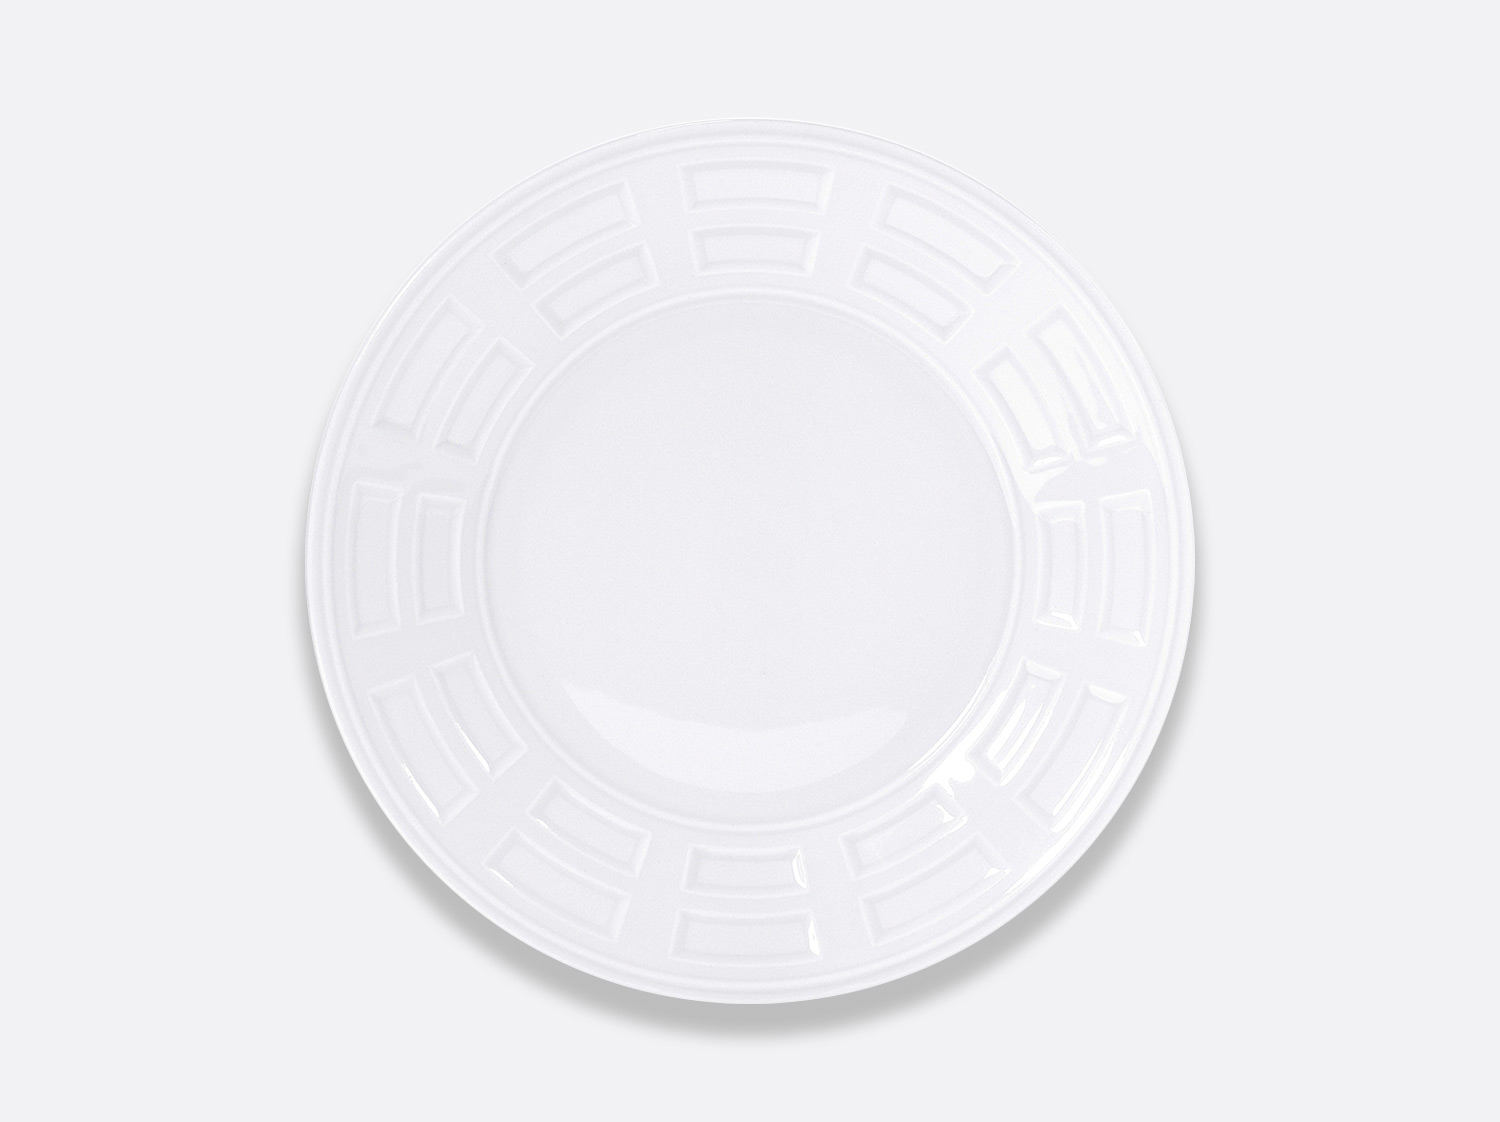 Assiette à dîner 26 cm en porcelaine de la collection Naxos Bernardaud